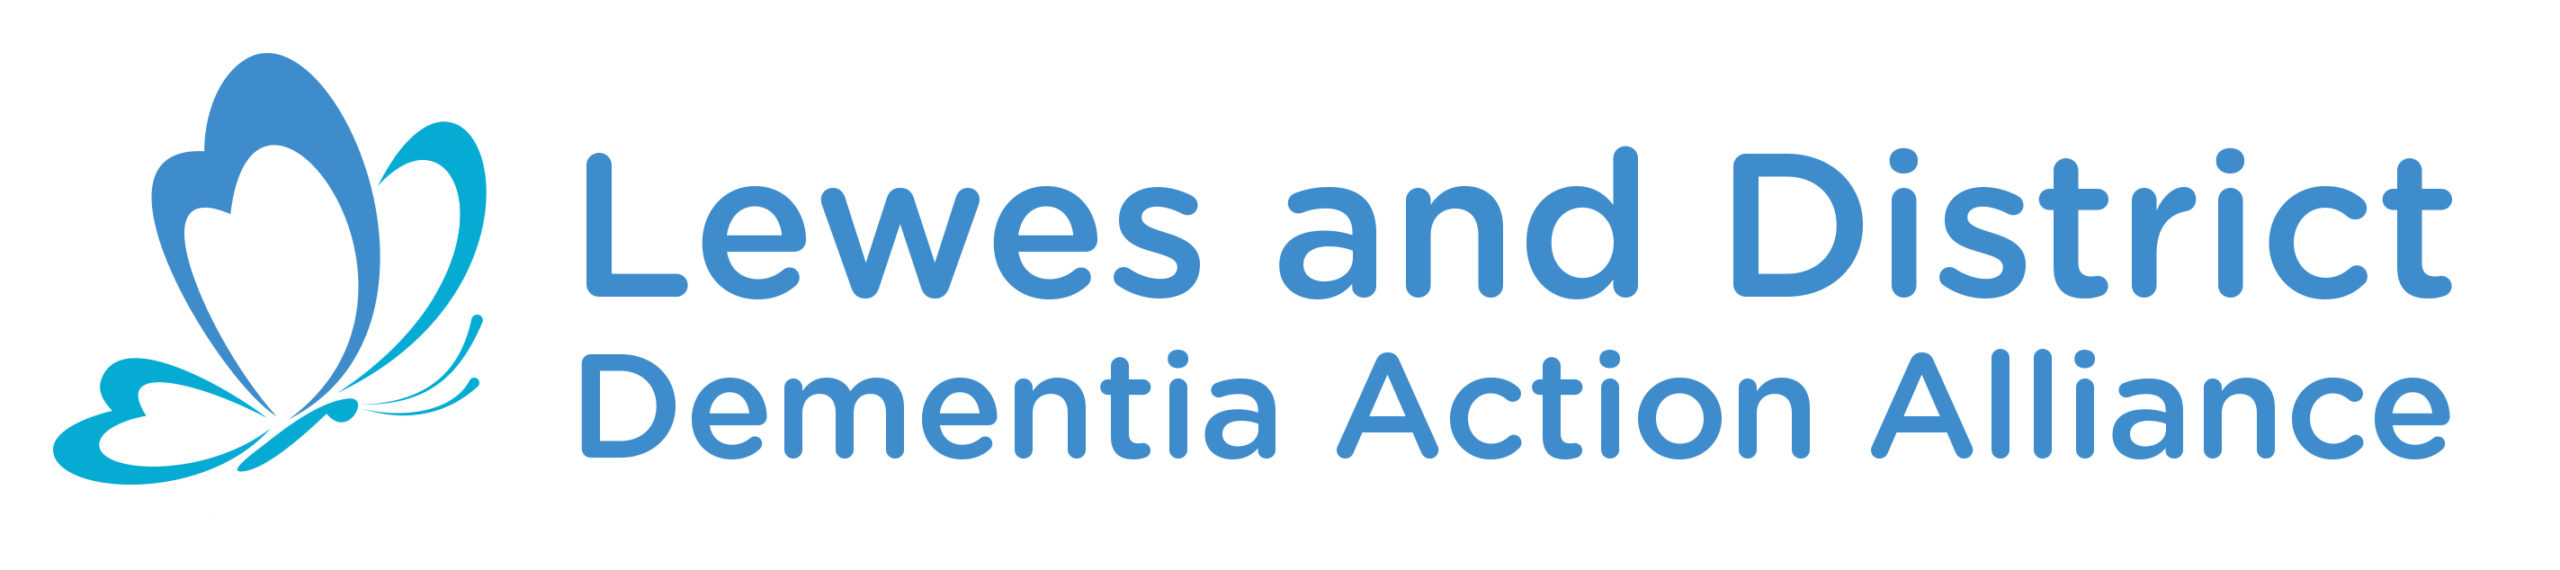 Lewes and District Dementia Action Alliance